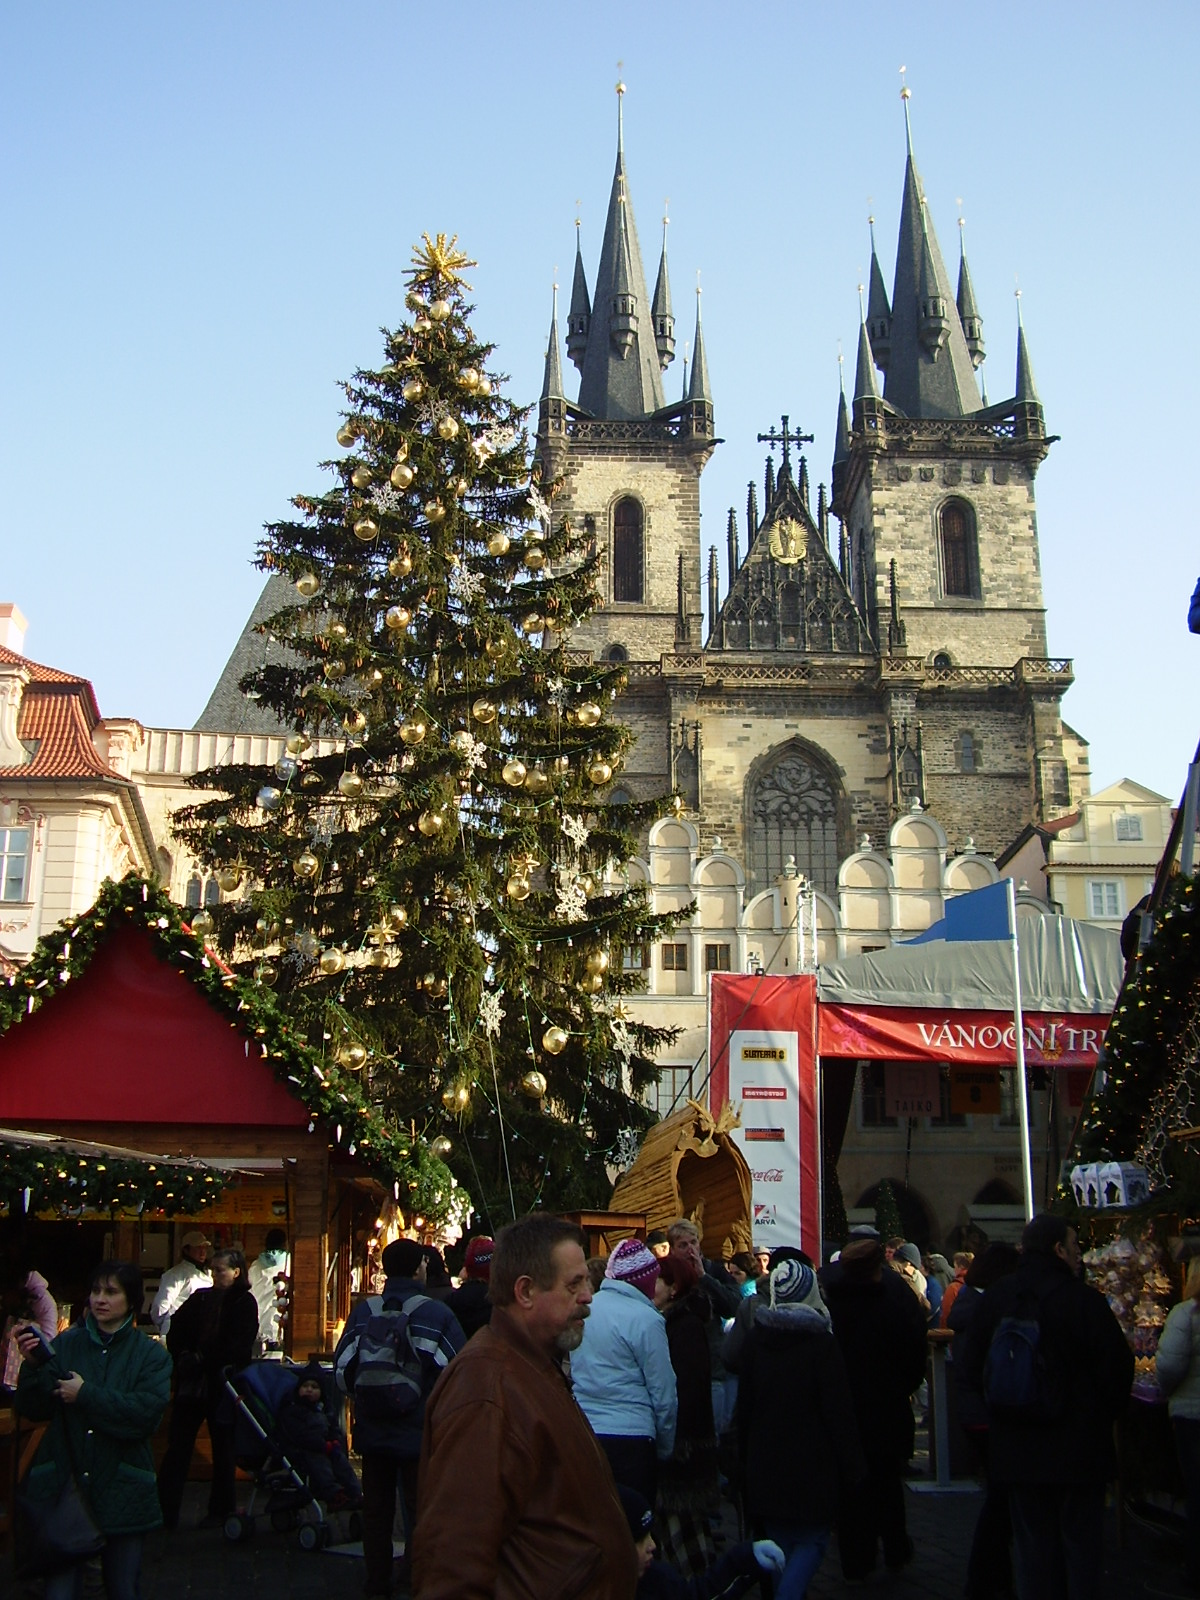 http://www.vivalditravel.hu/user_images/39/advent-praga_ovaroster2.jpg